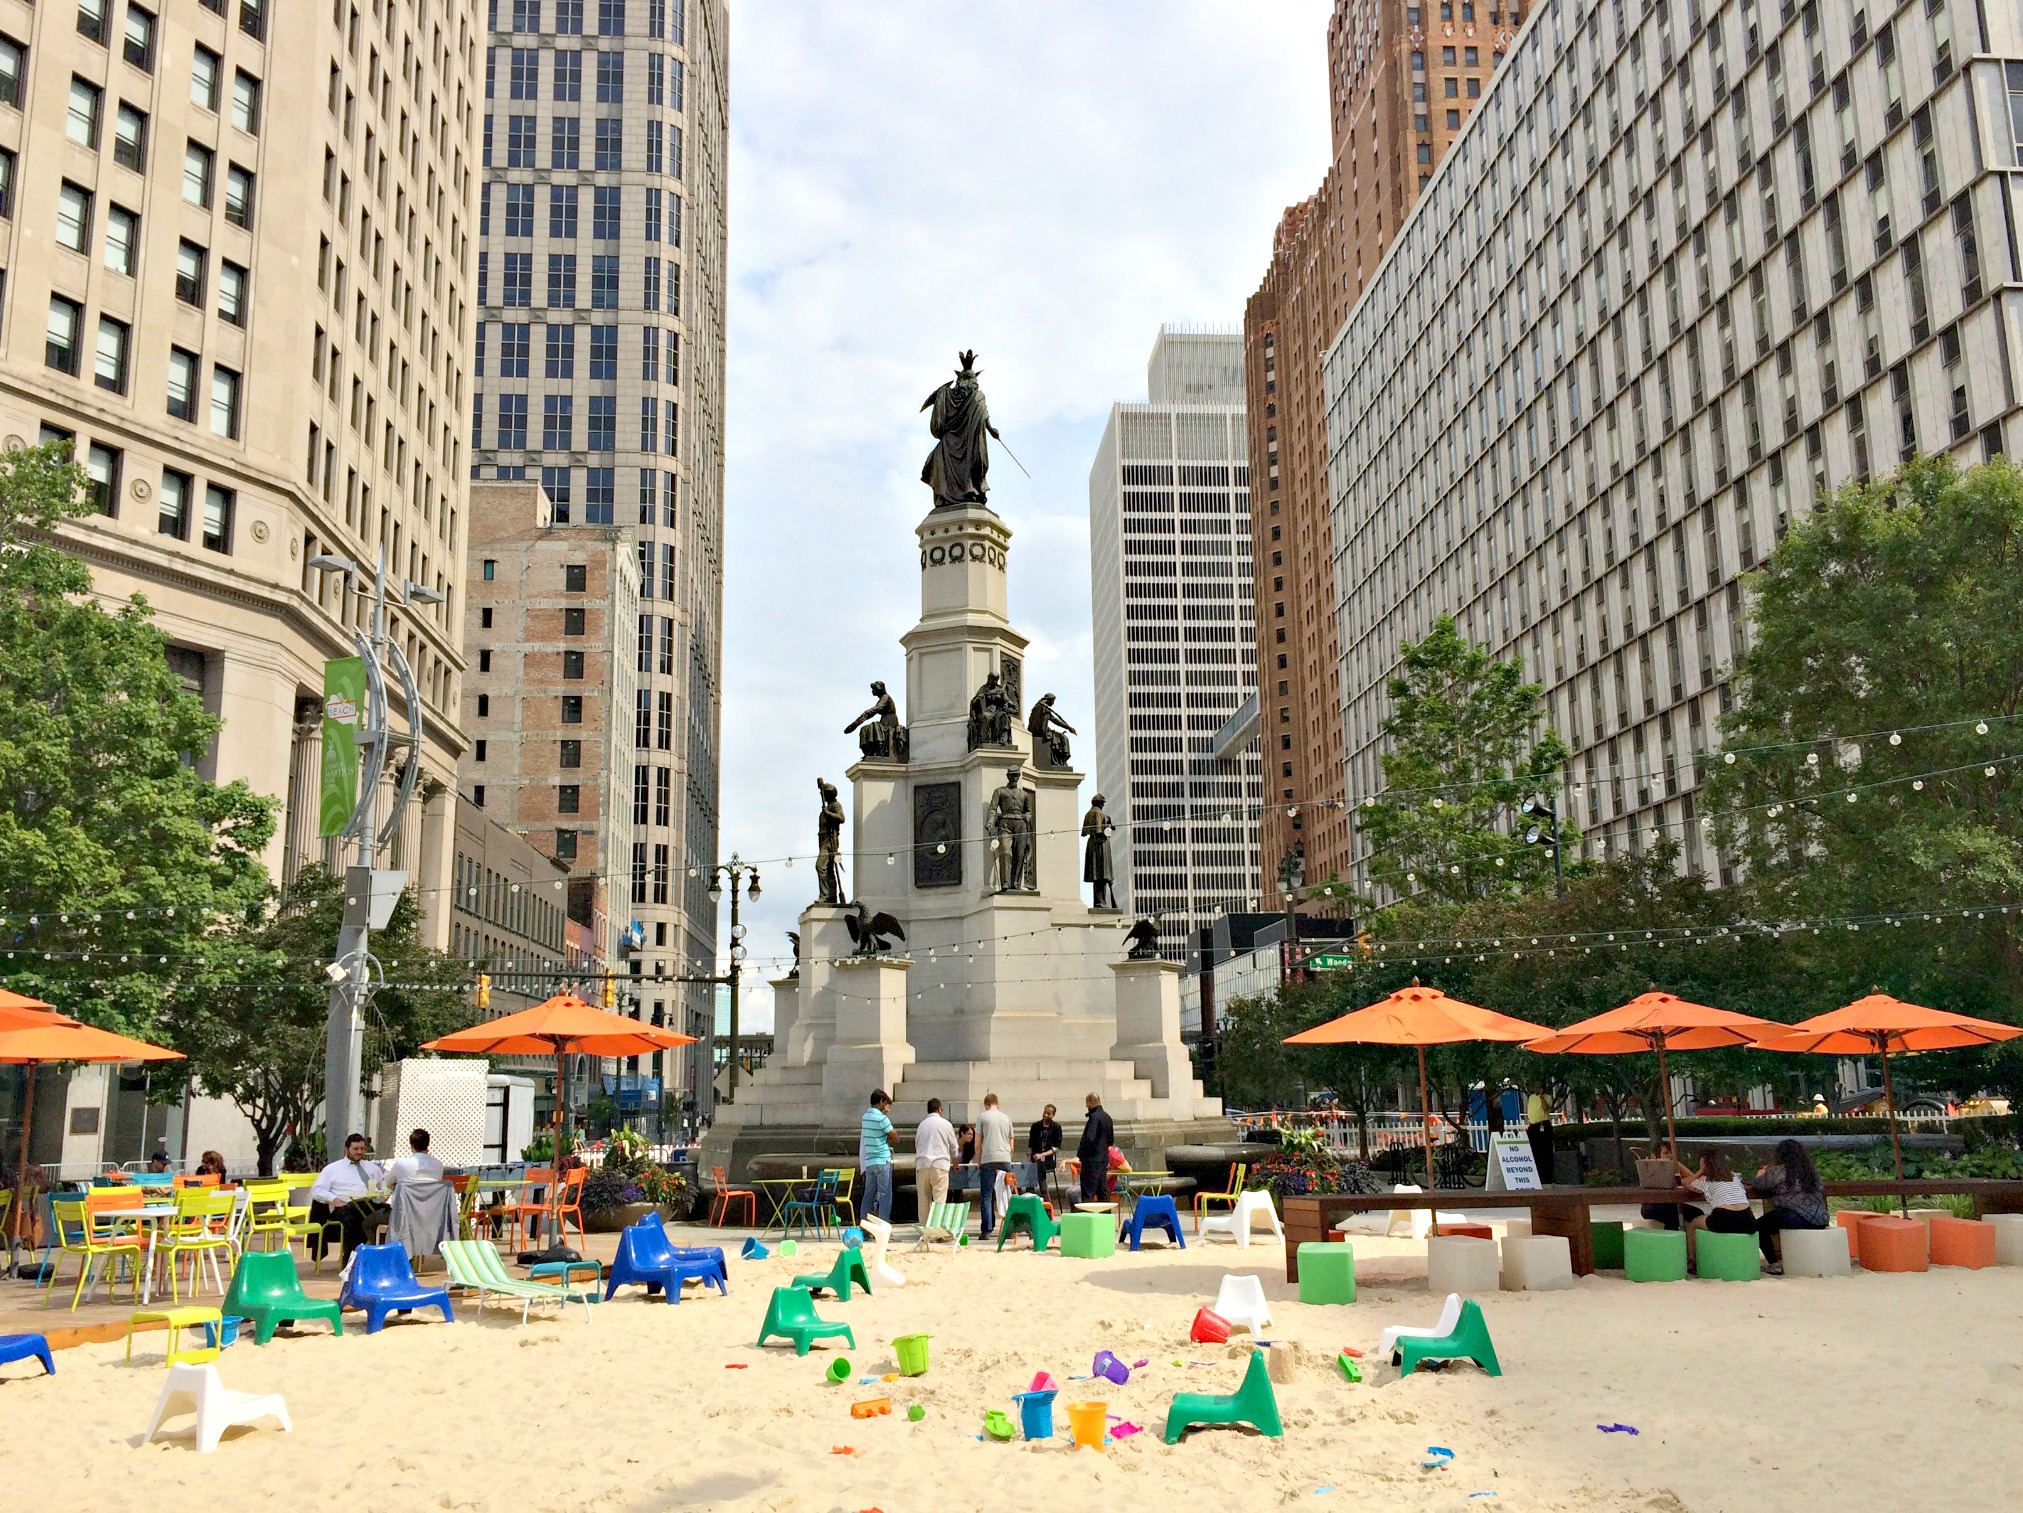 Summer in Martius Park, with Soldiers and Sailors Monument (image from Life in Leggings Blog)